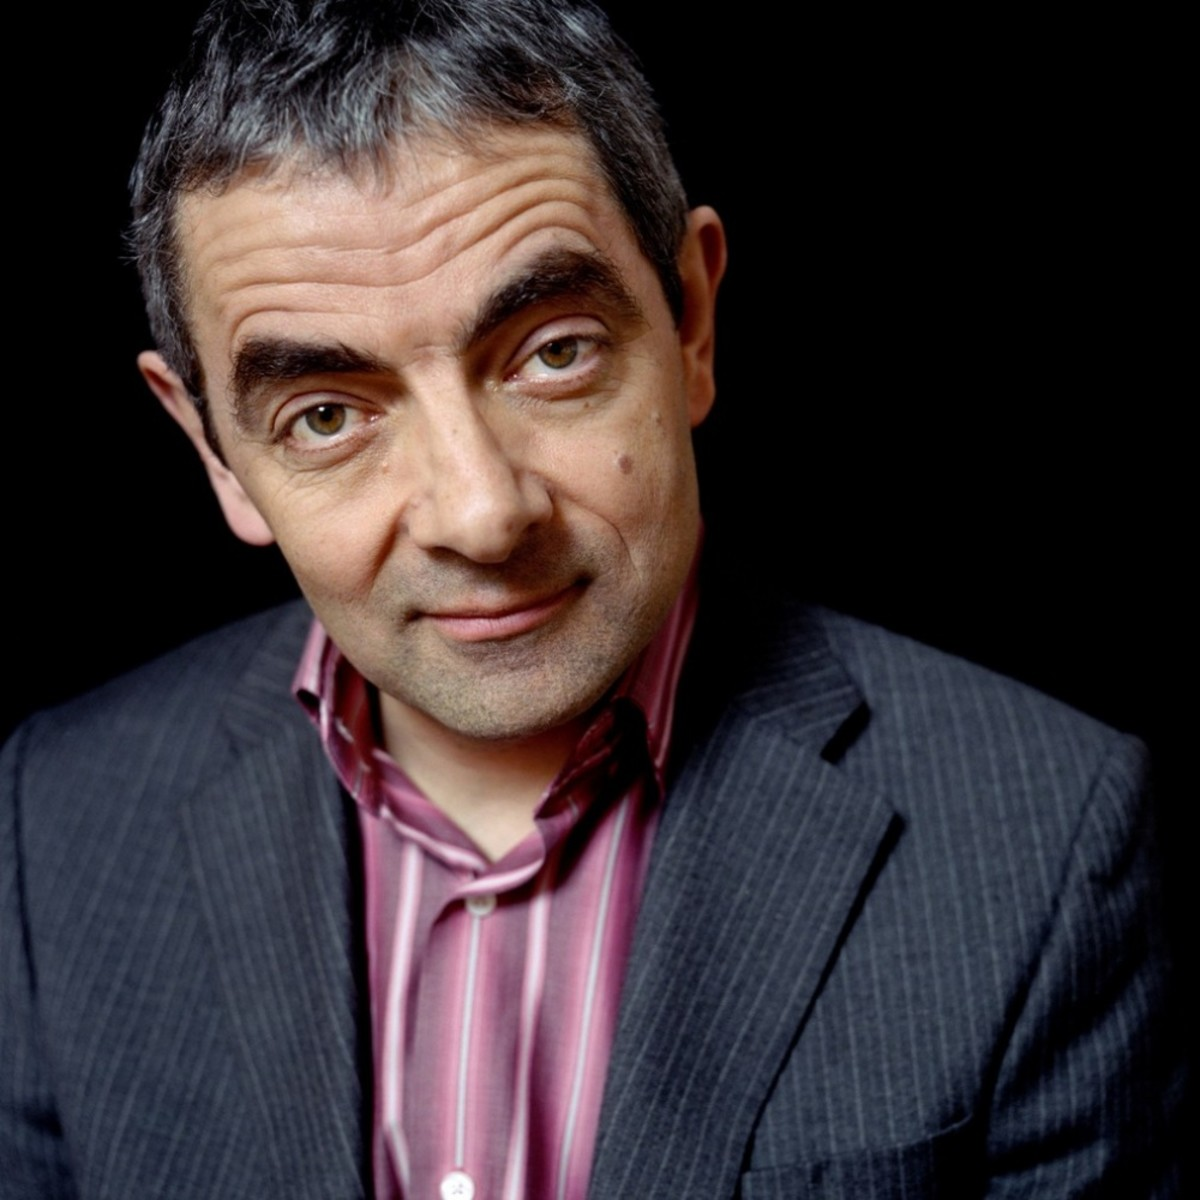 The Real Rowan Atkinson